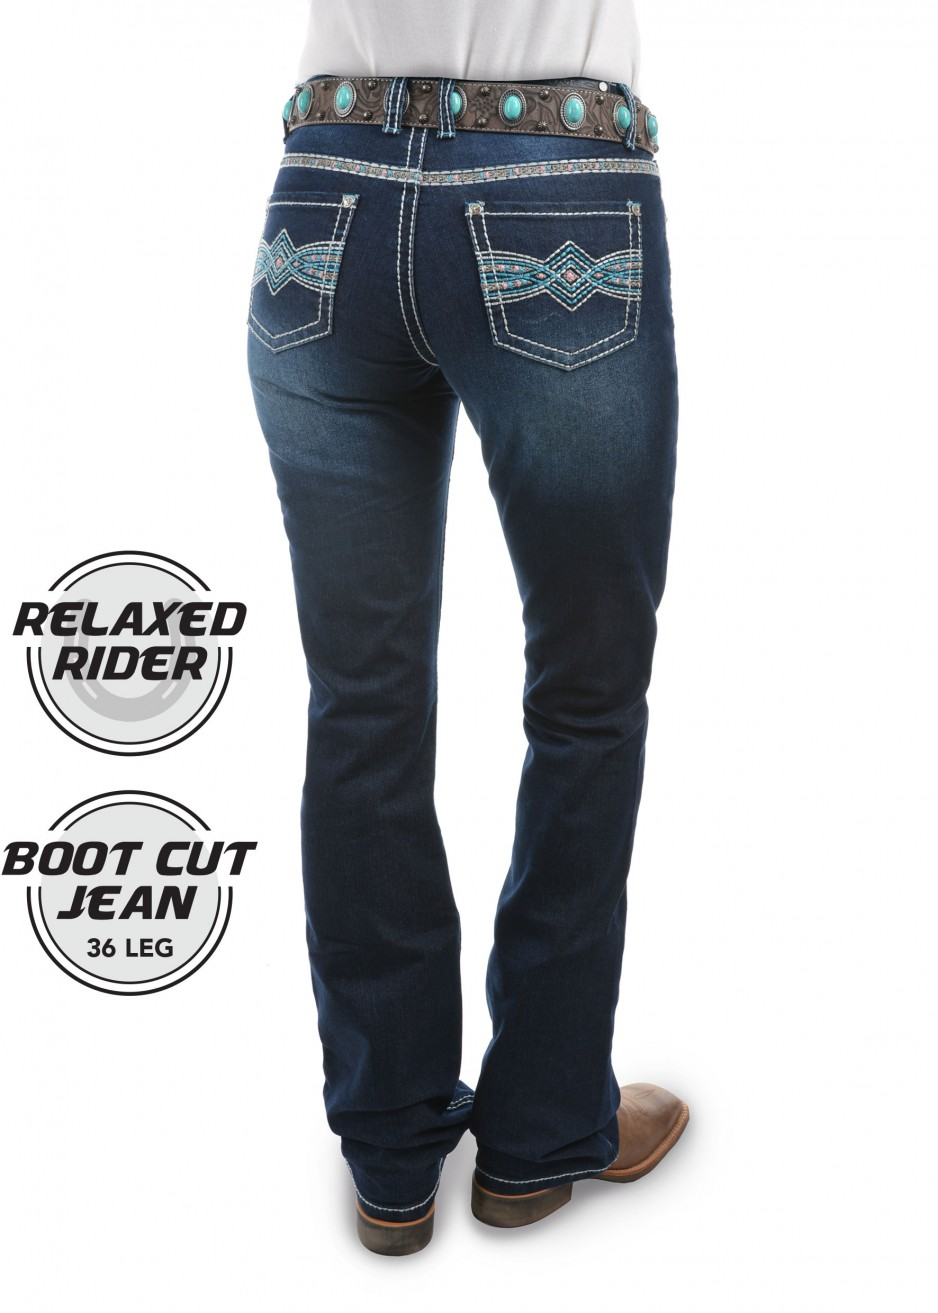 INDIANA RELAXED RIDER JEAN 36 LEG